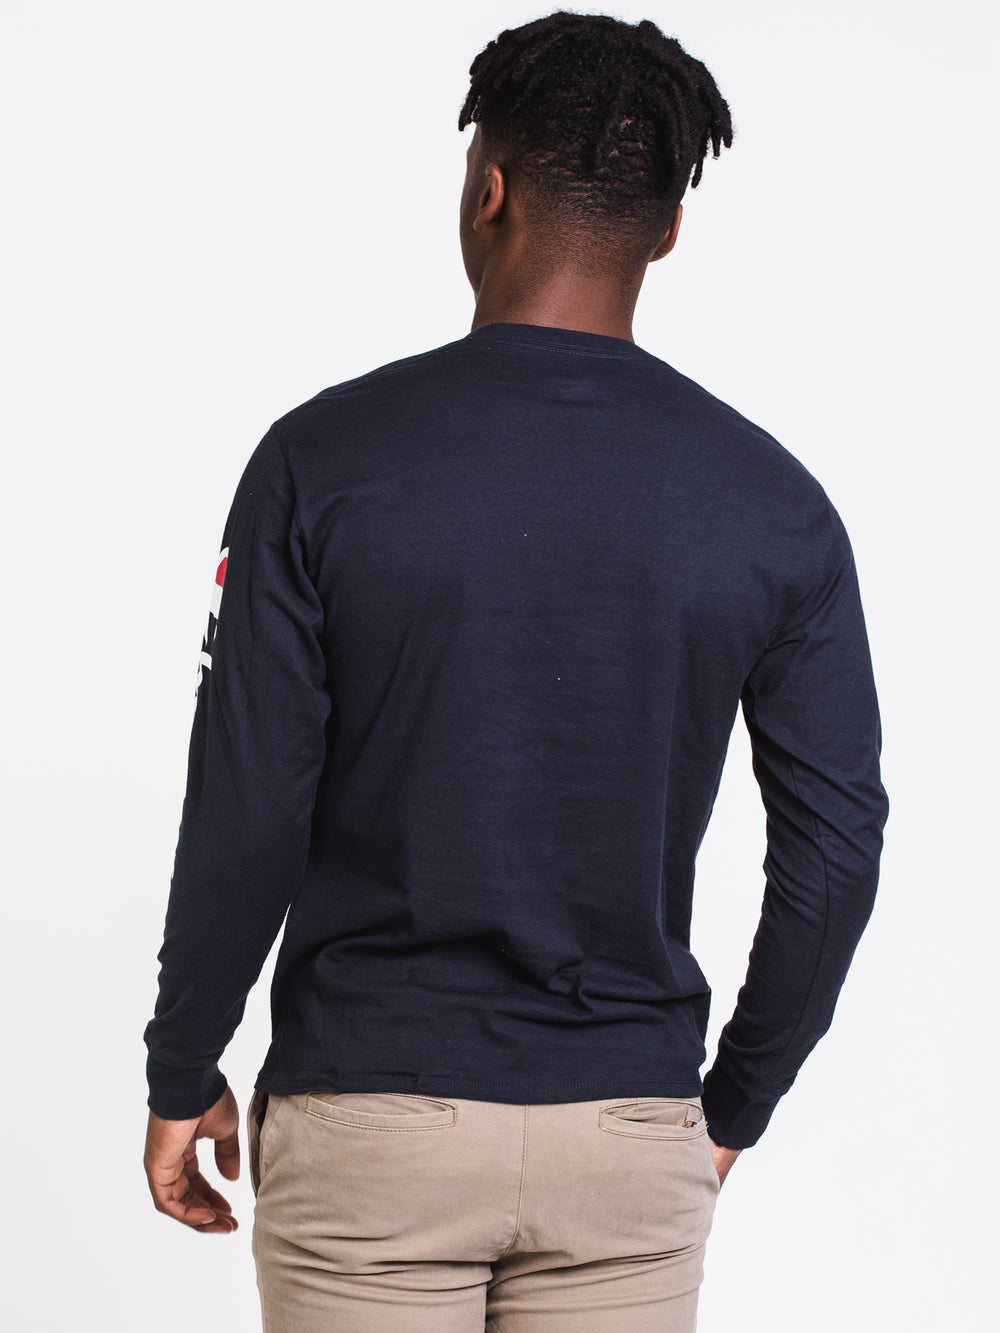 MENS CLASSIC SLV LONG SLEEVE T-SHIRT- NAVY